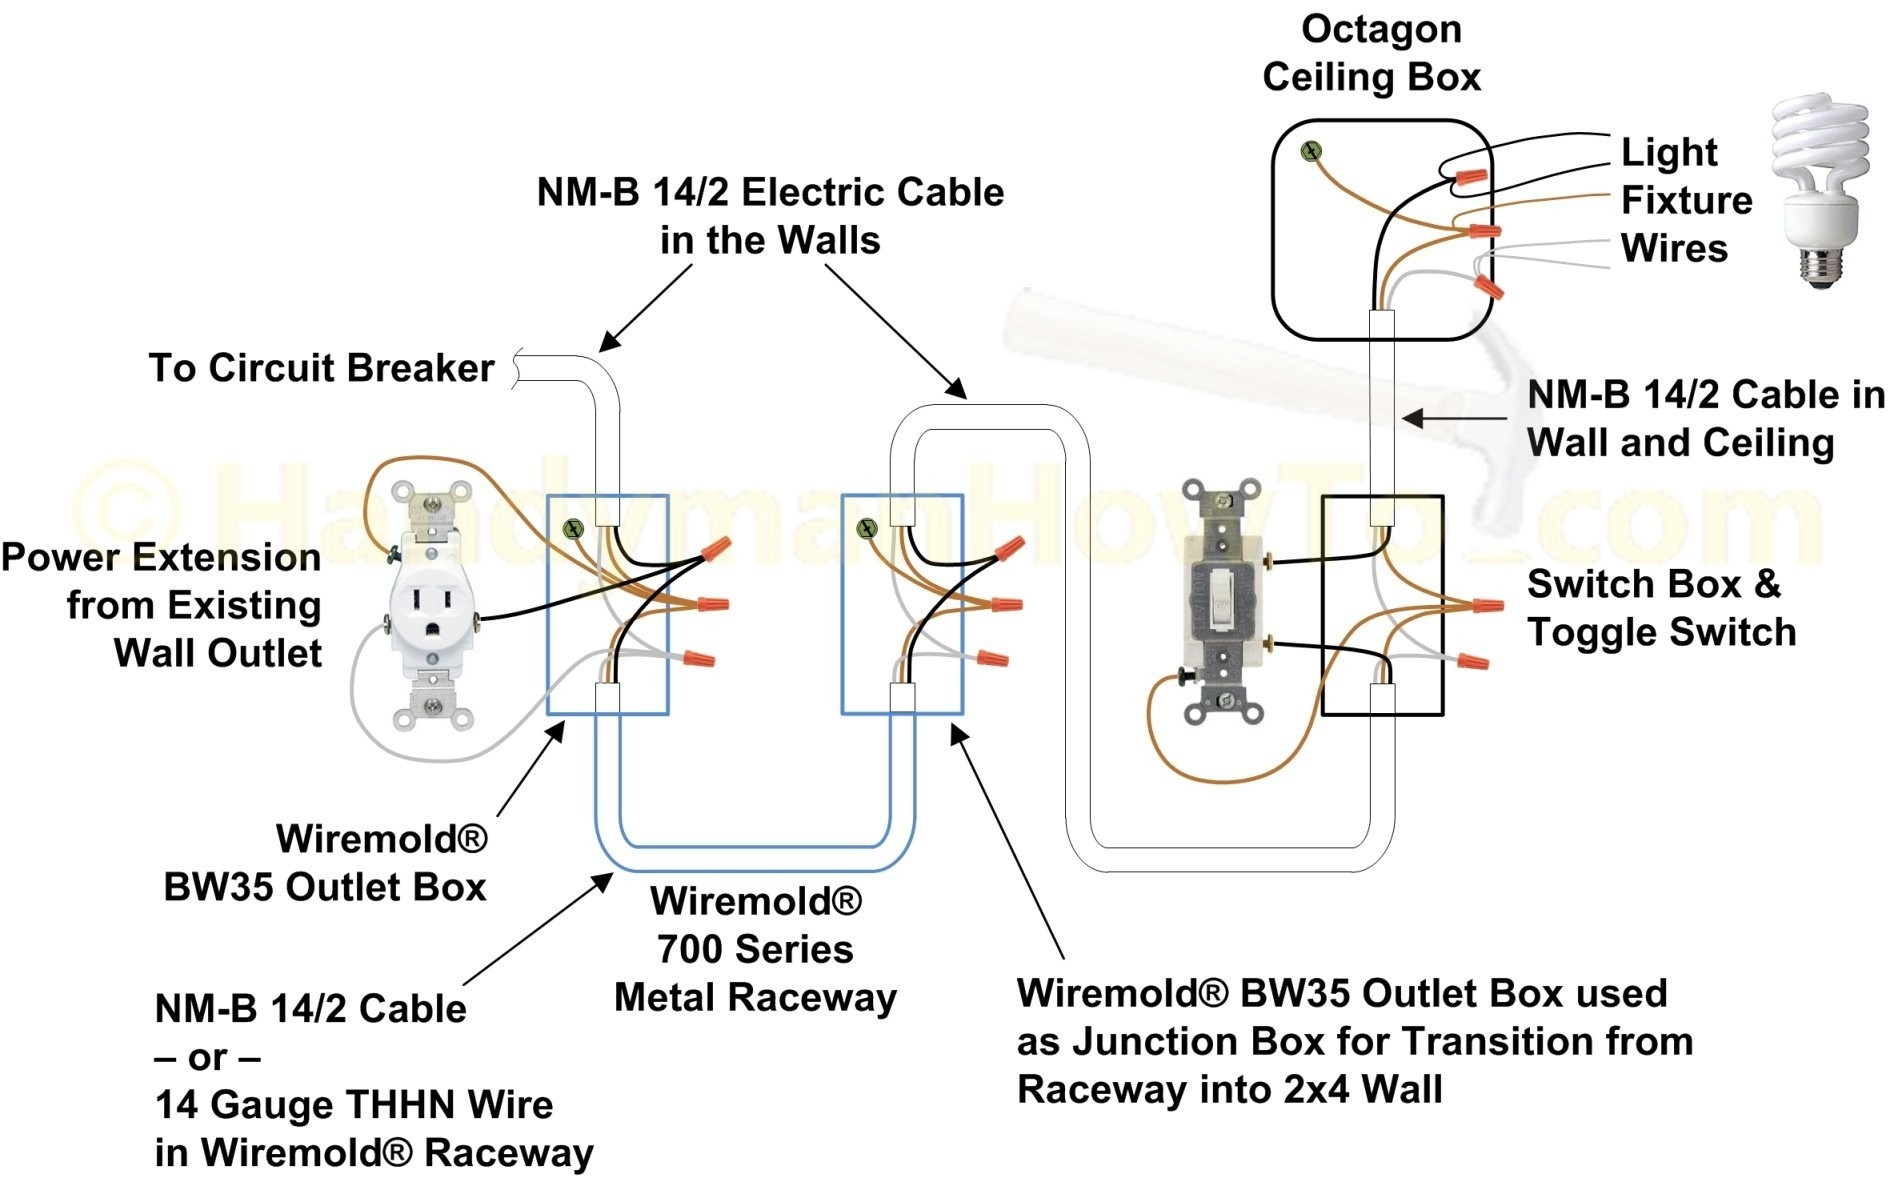 plug receptacle wiring How To Wire A Closet Light With Wiremold Wall Plug Wiring Plastic